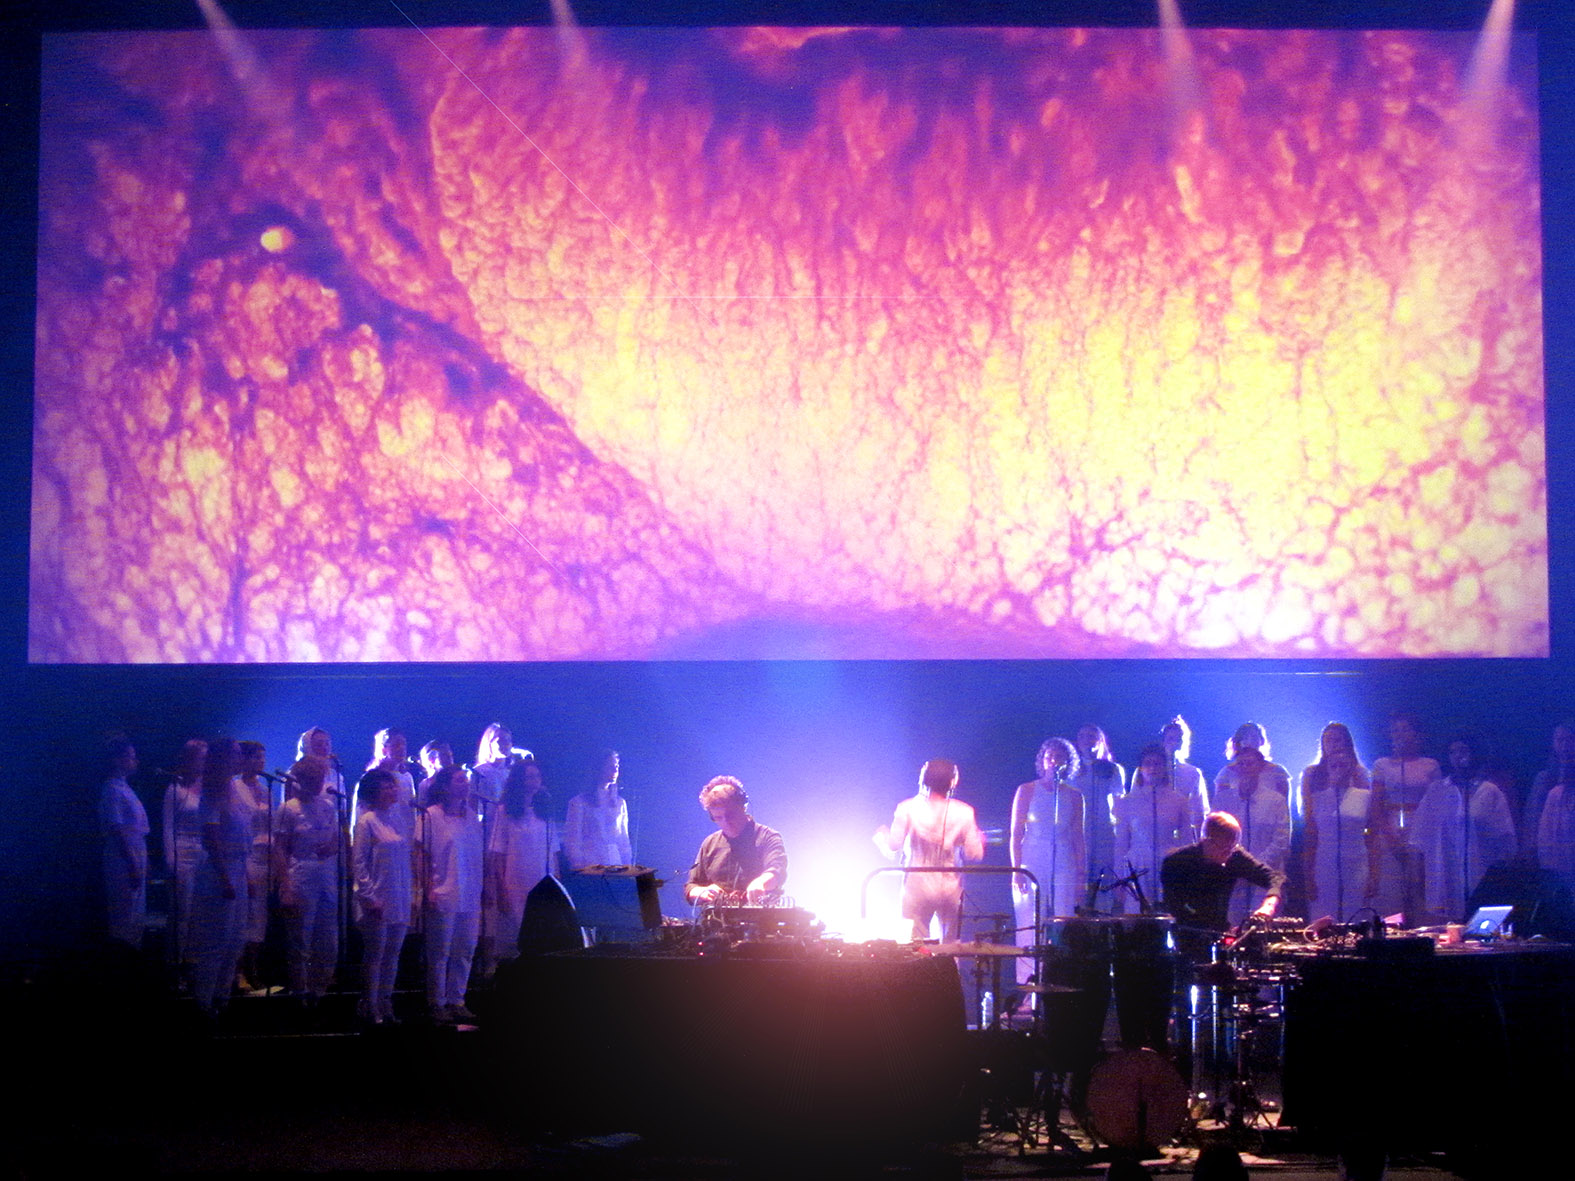 Two DJs perform in front of an all-female choir. Behind them is an abstract image projection.